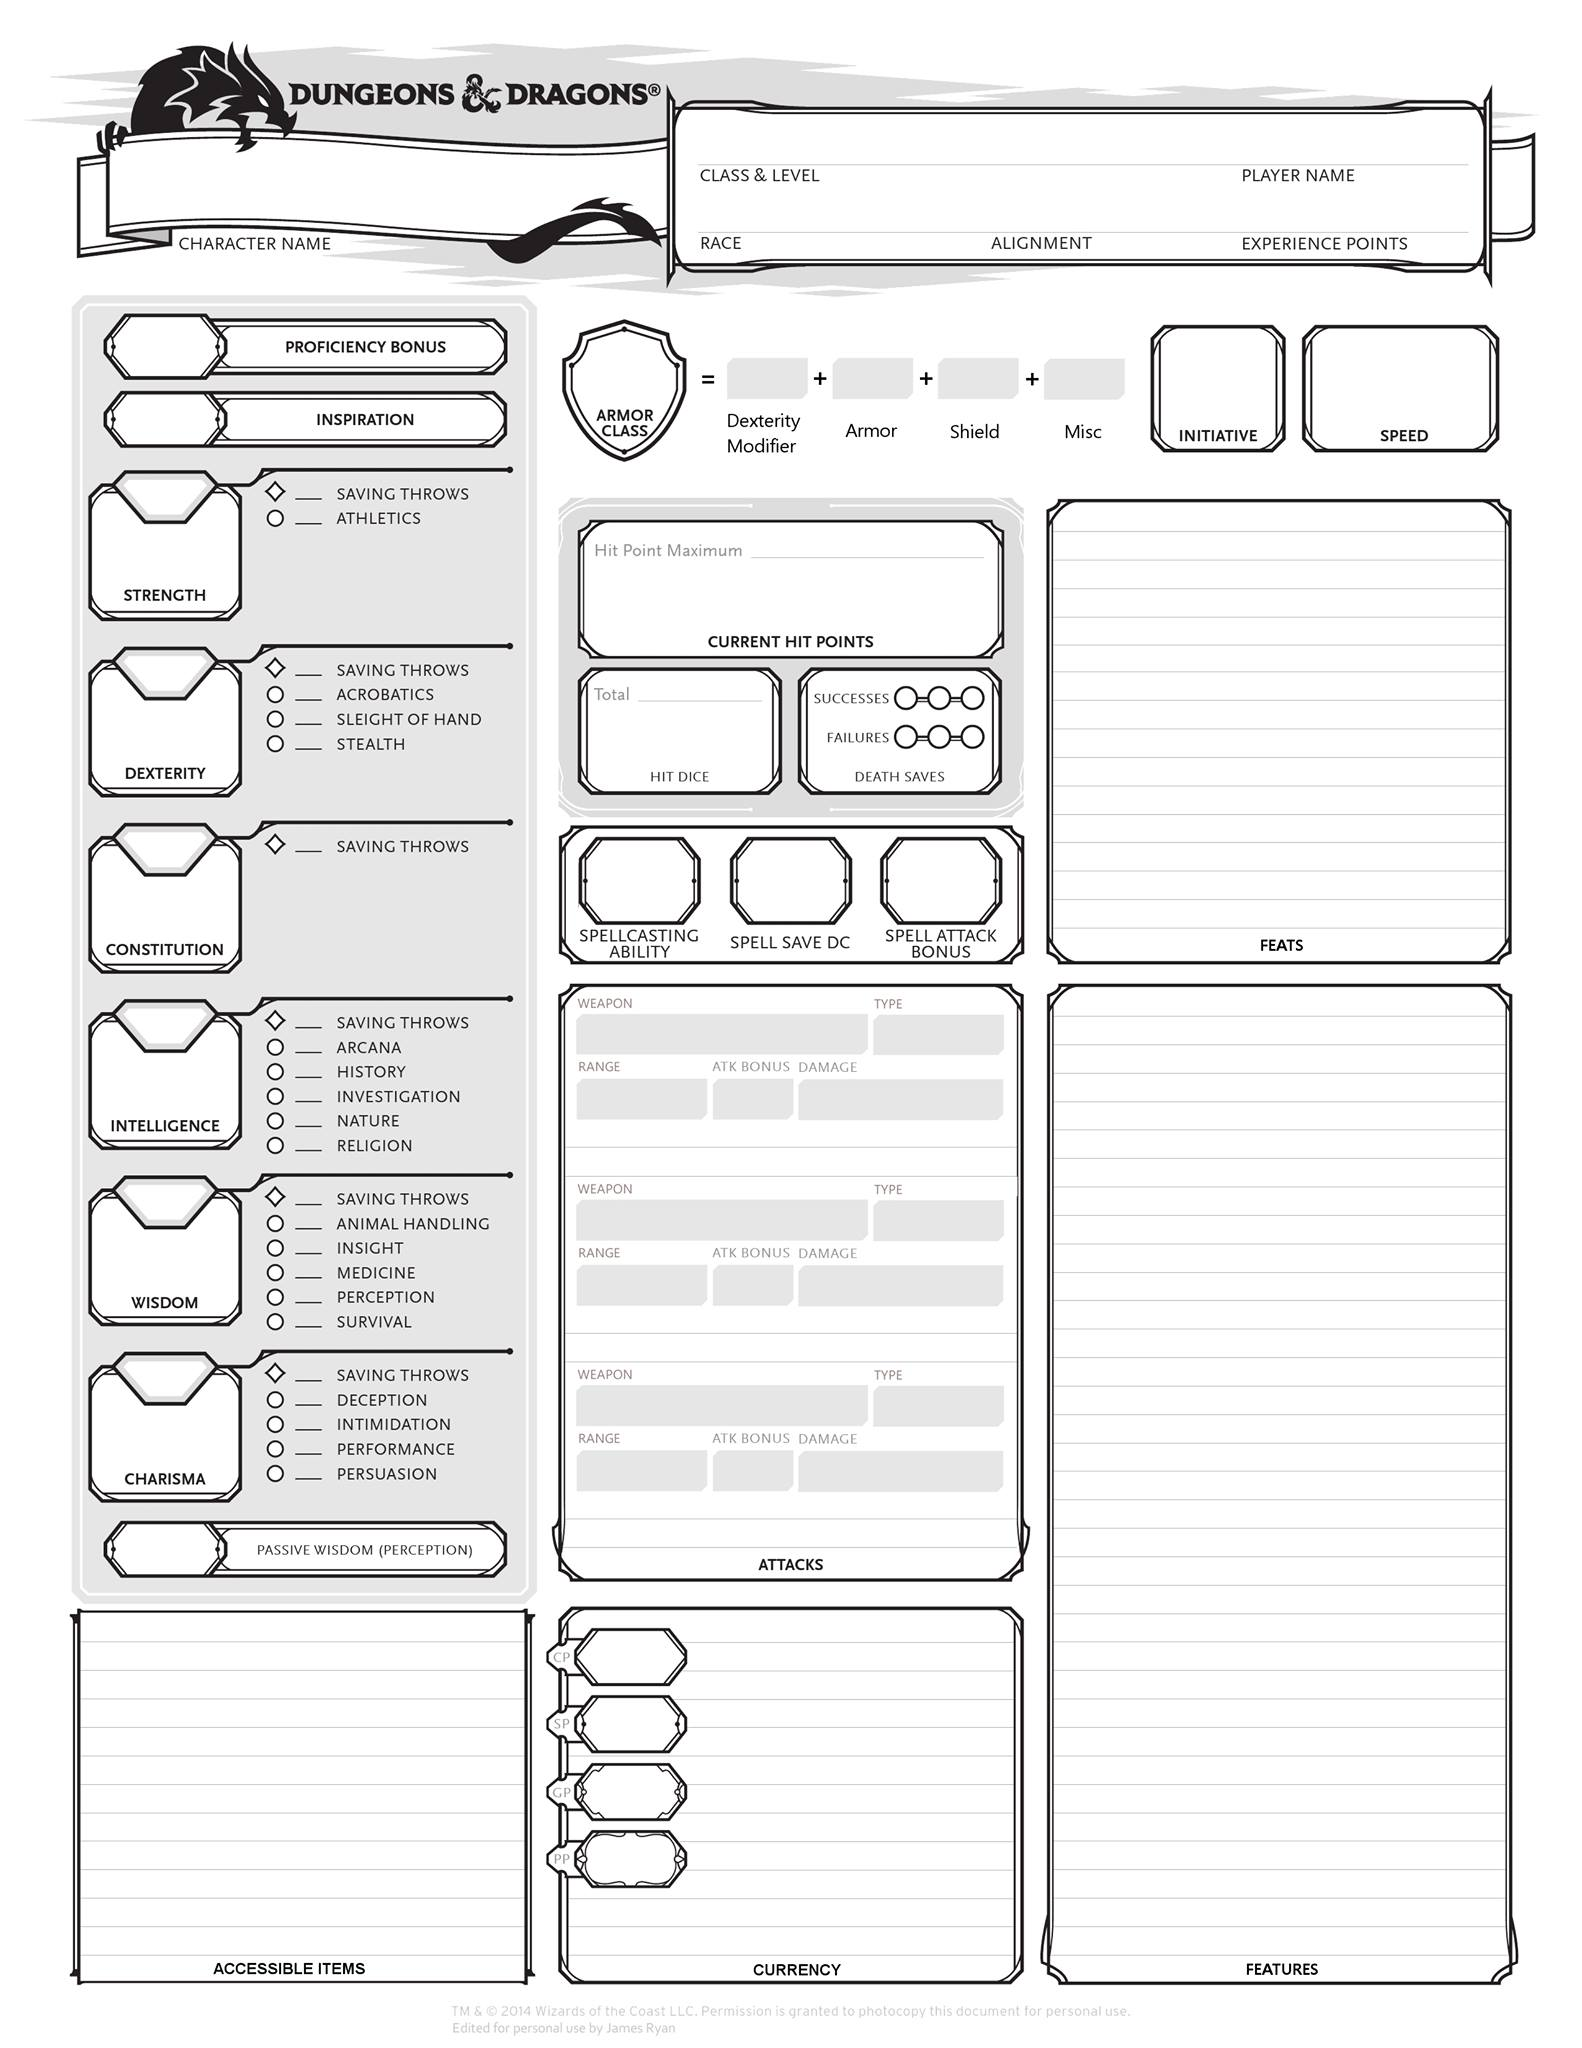 Accomplished image pertaining to d&d character sheet printable